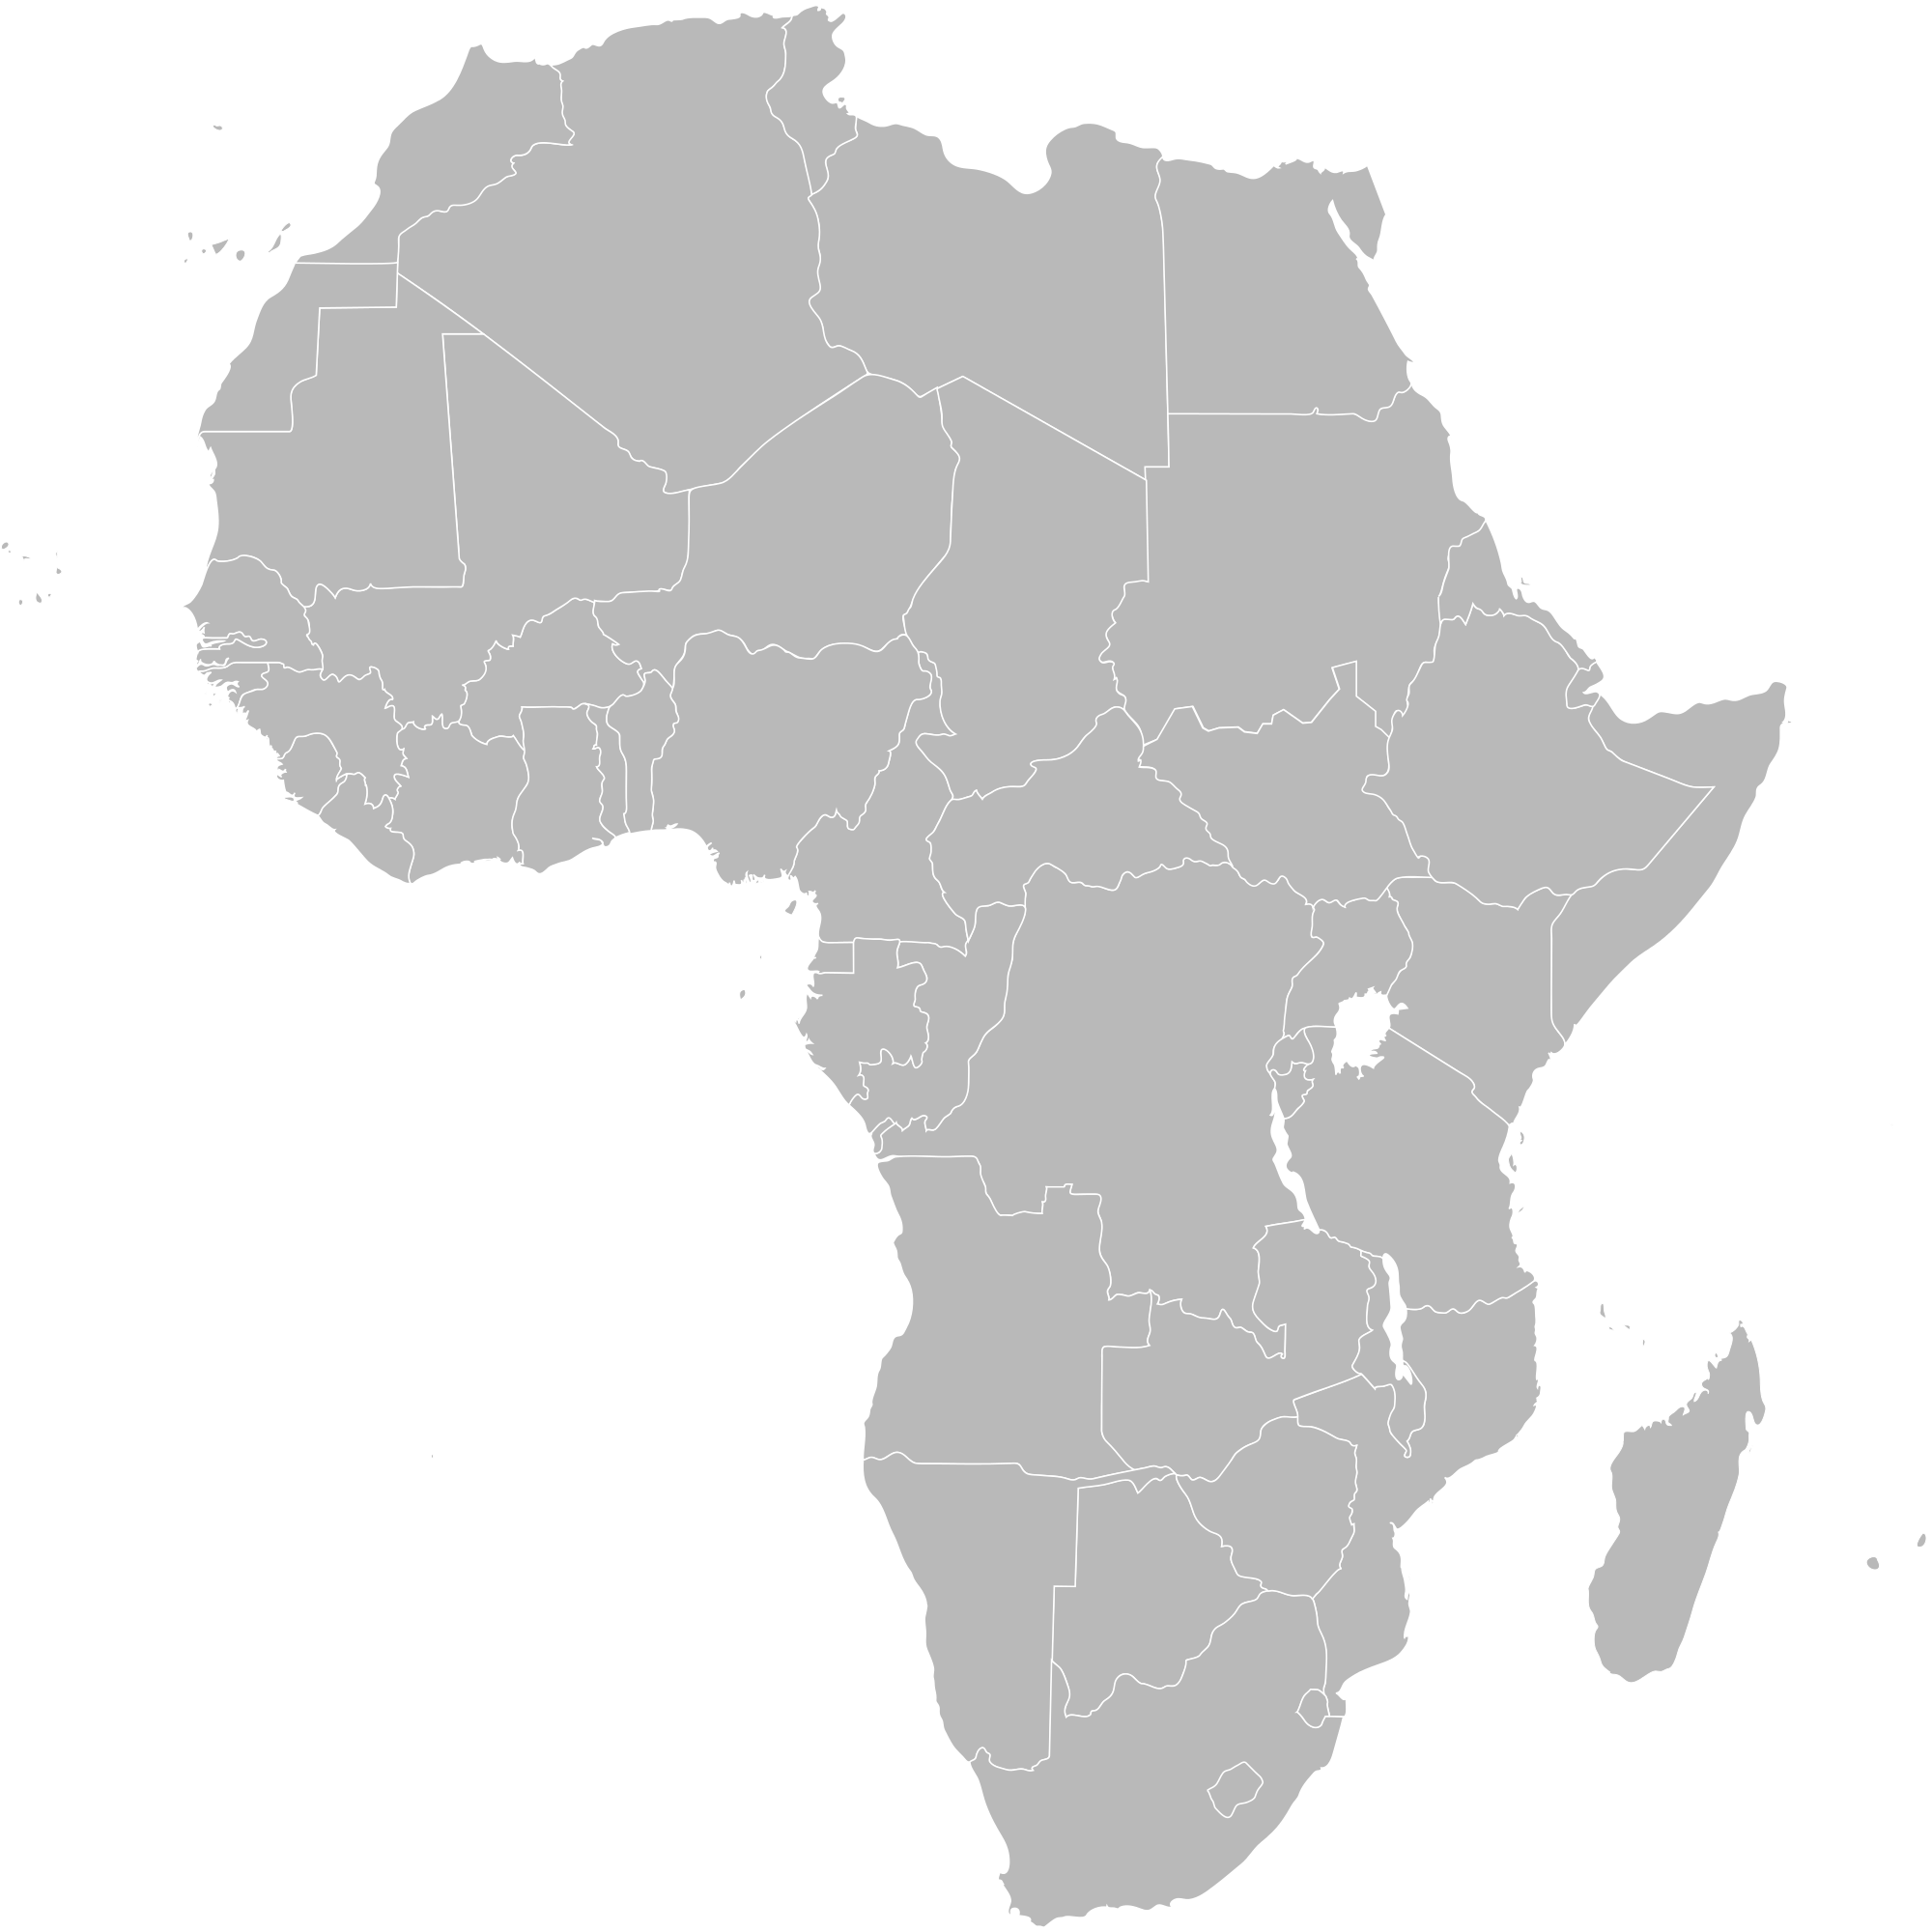 File:BlankMap Africa2.png   Wikimedia Commons